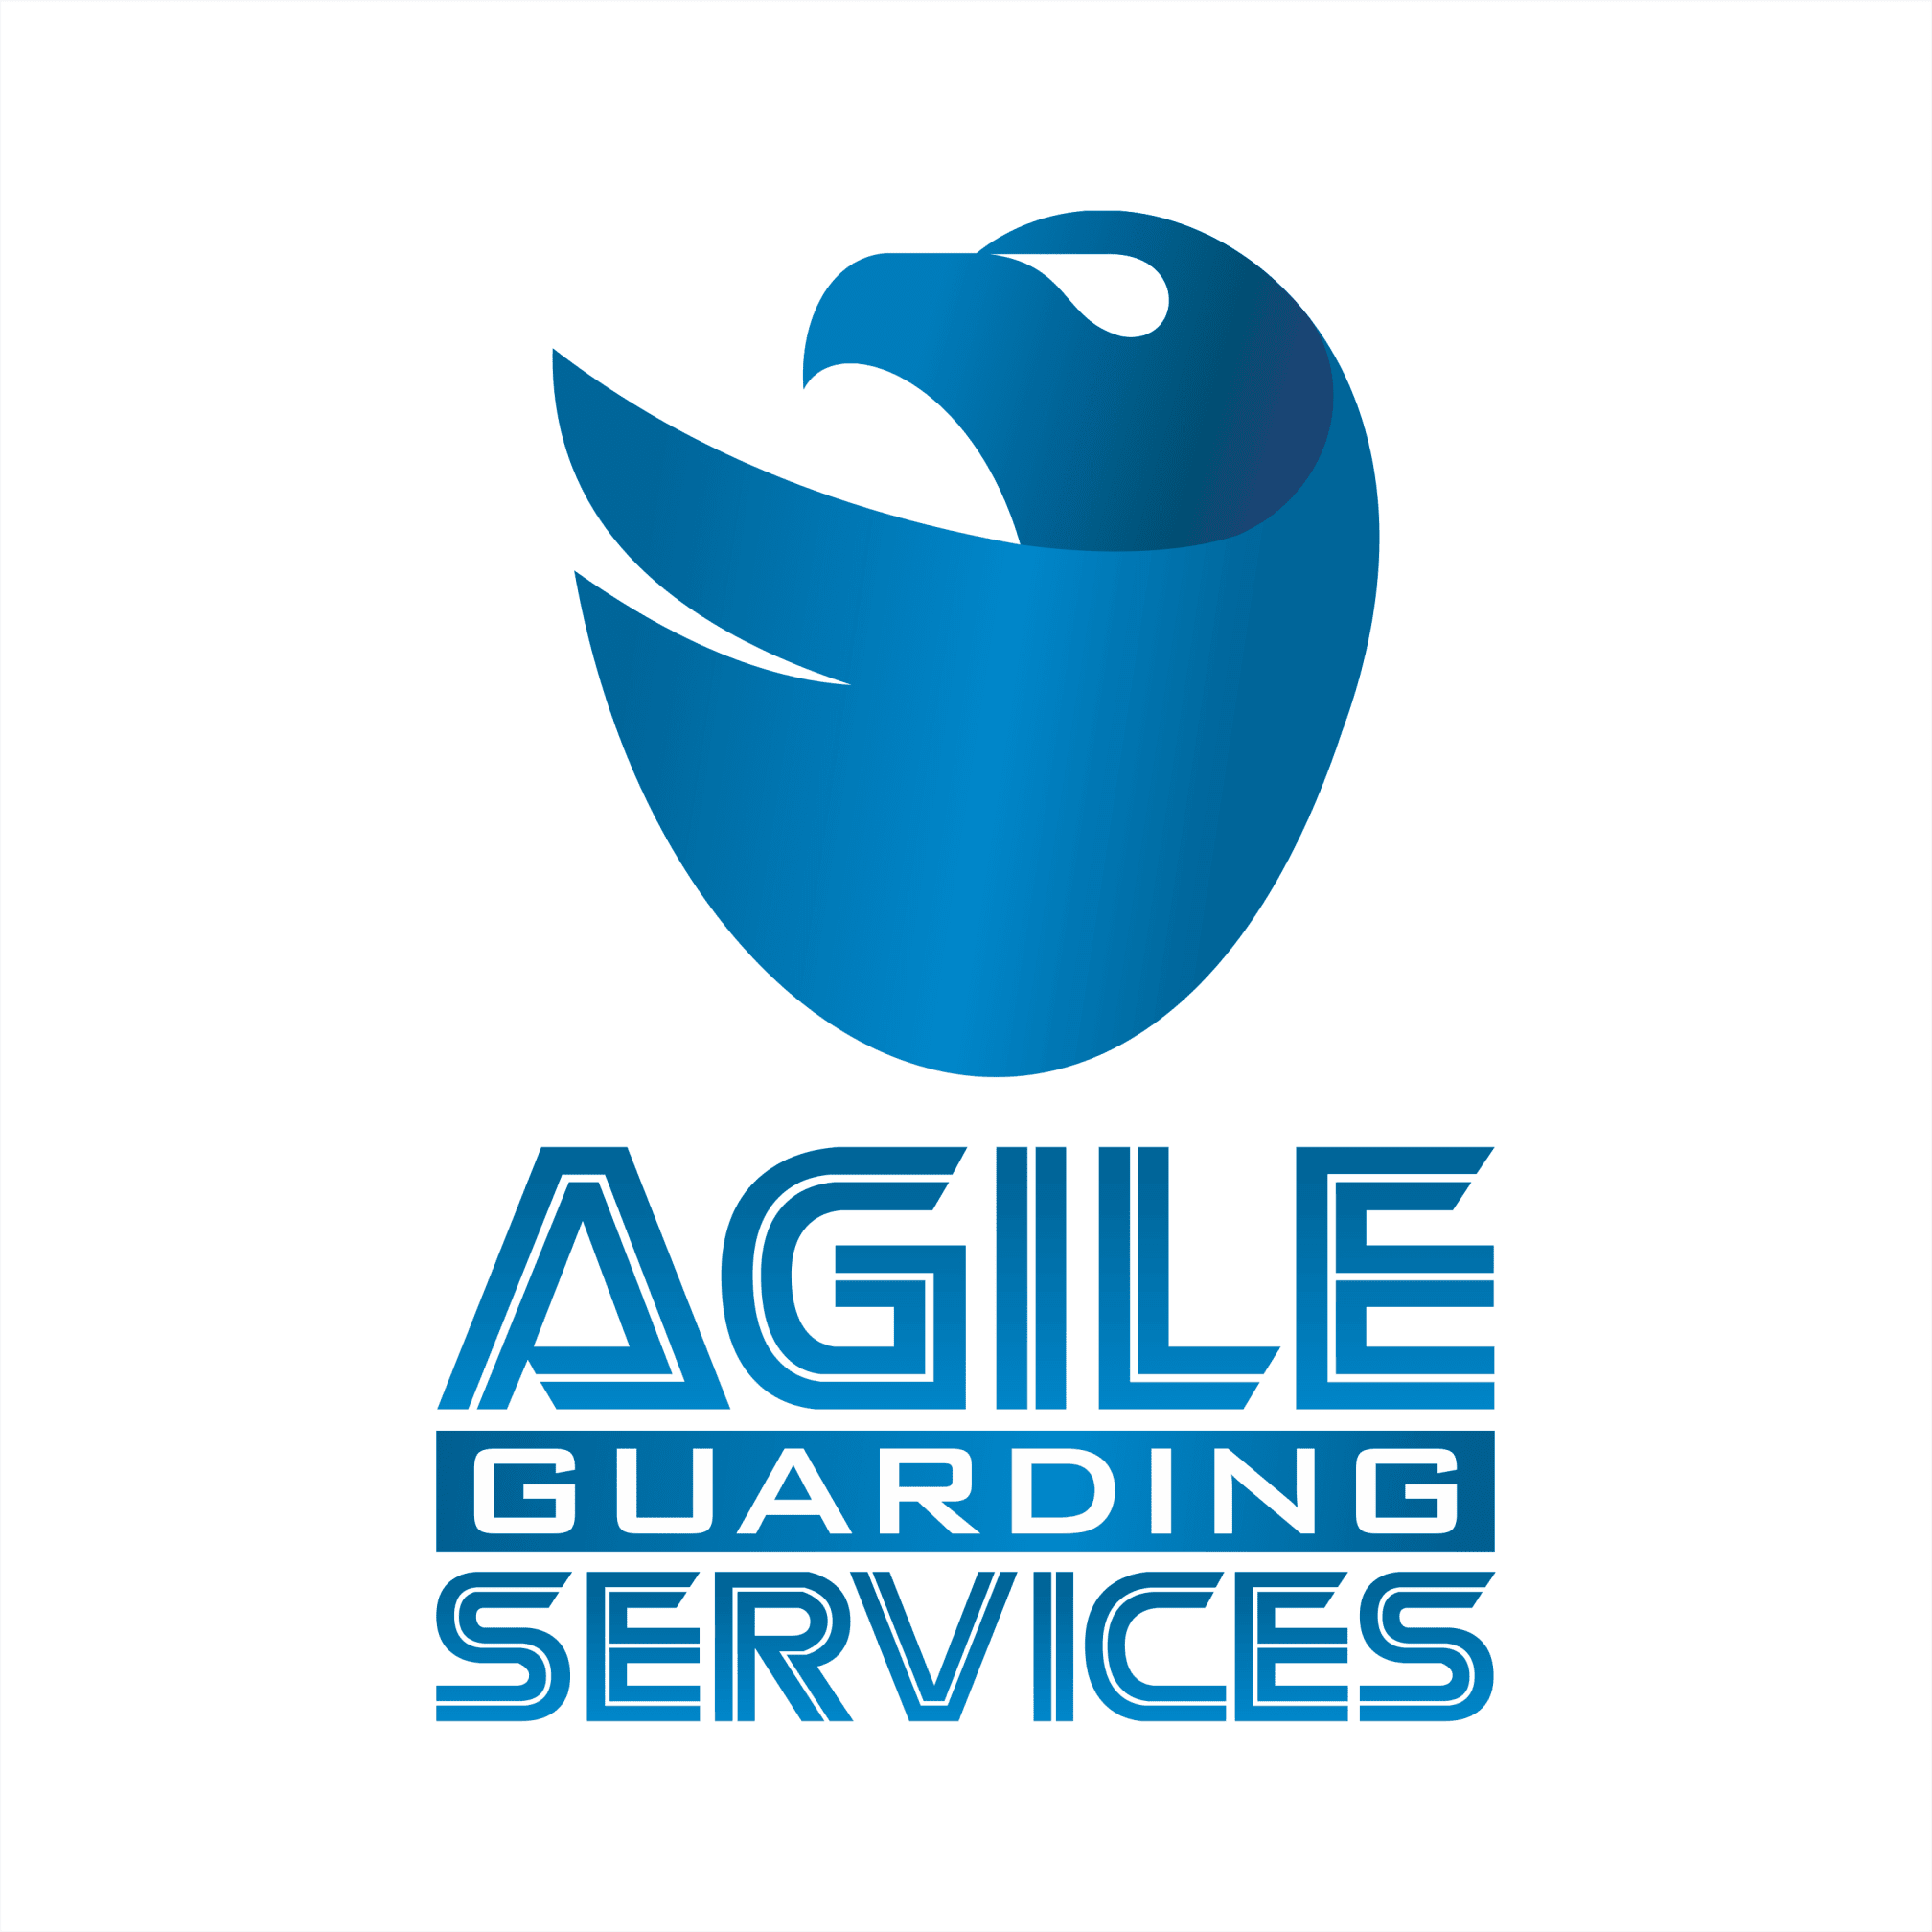 Agile Guarding Services Ltd